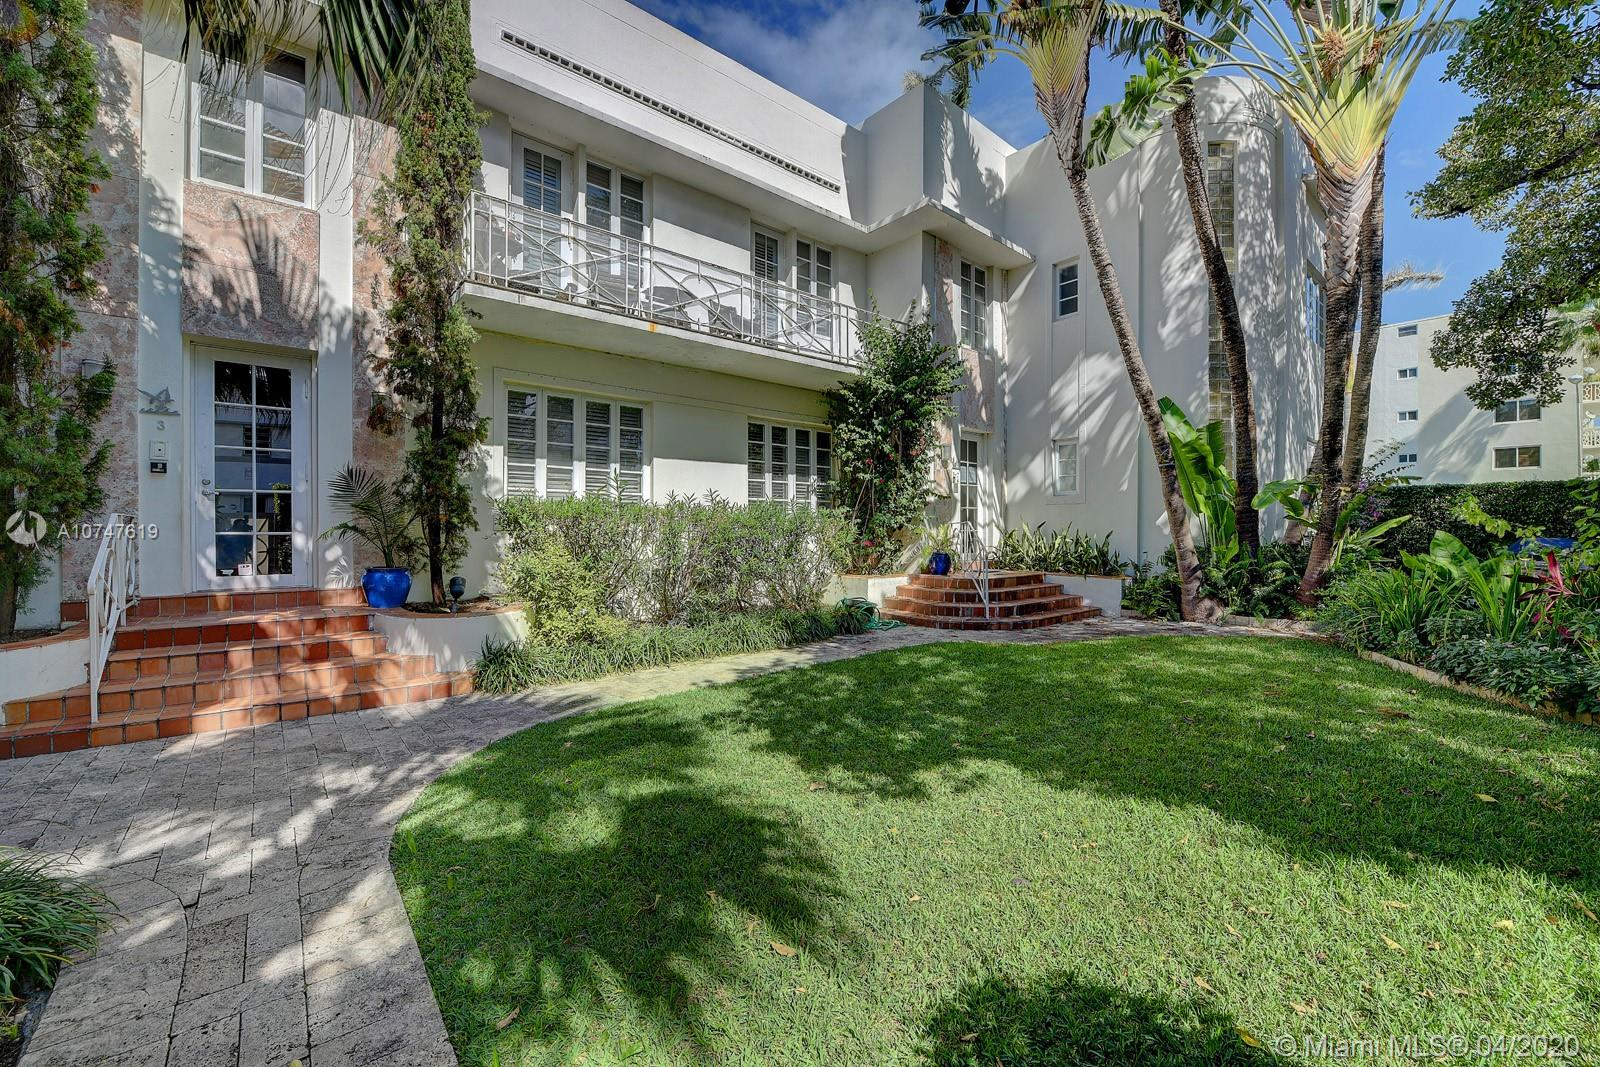 711  14th St #9 For Sale A10747619, FL